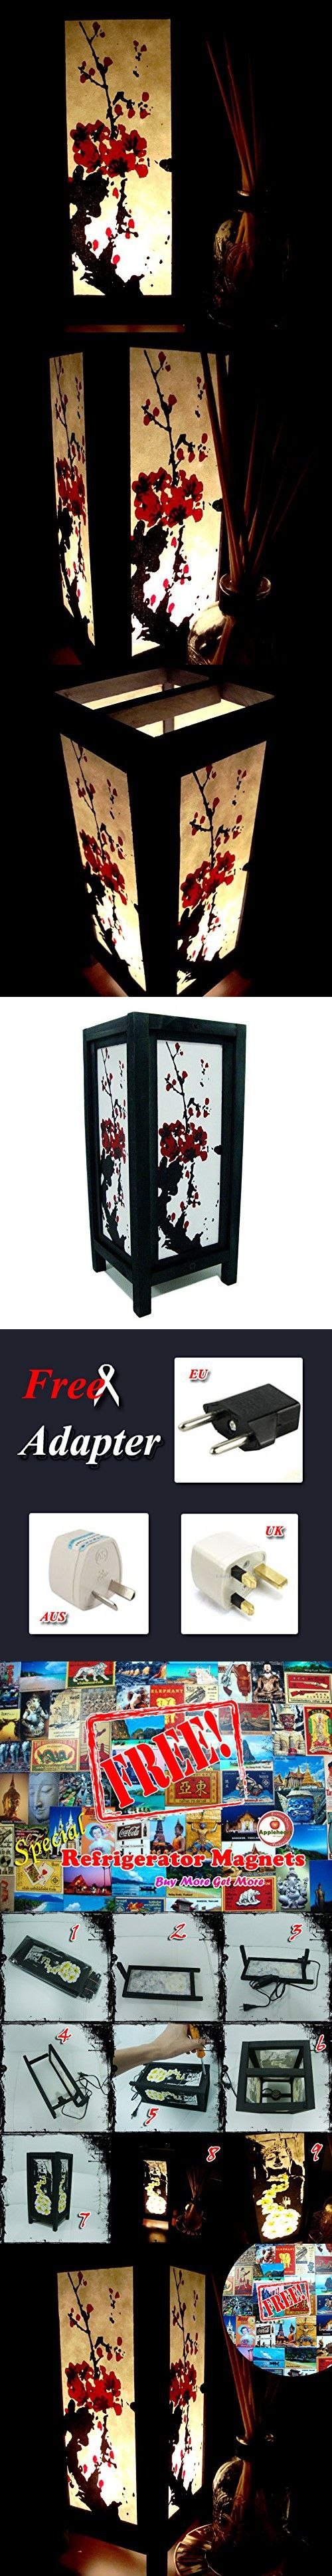 Red Japanese Cherry Blossom Table Lamp Lighting Shades Floor Desk Outdoor Touch Room Bedroom Modern Vintage Handmade Asian Oriental Wood LED Bedside Gift Art Home Garden Christmas; Free Adapter; Us 2 Pin Plug #115